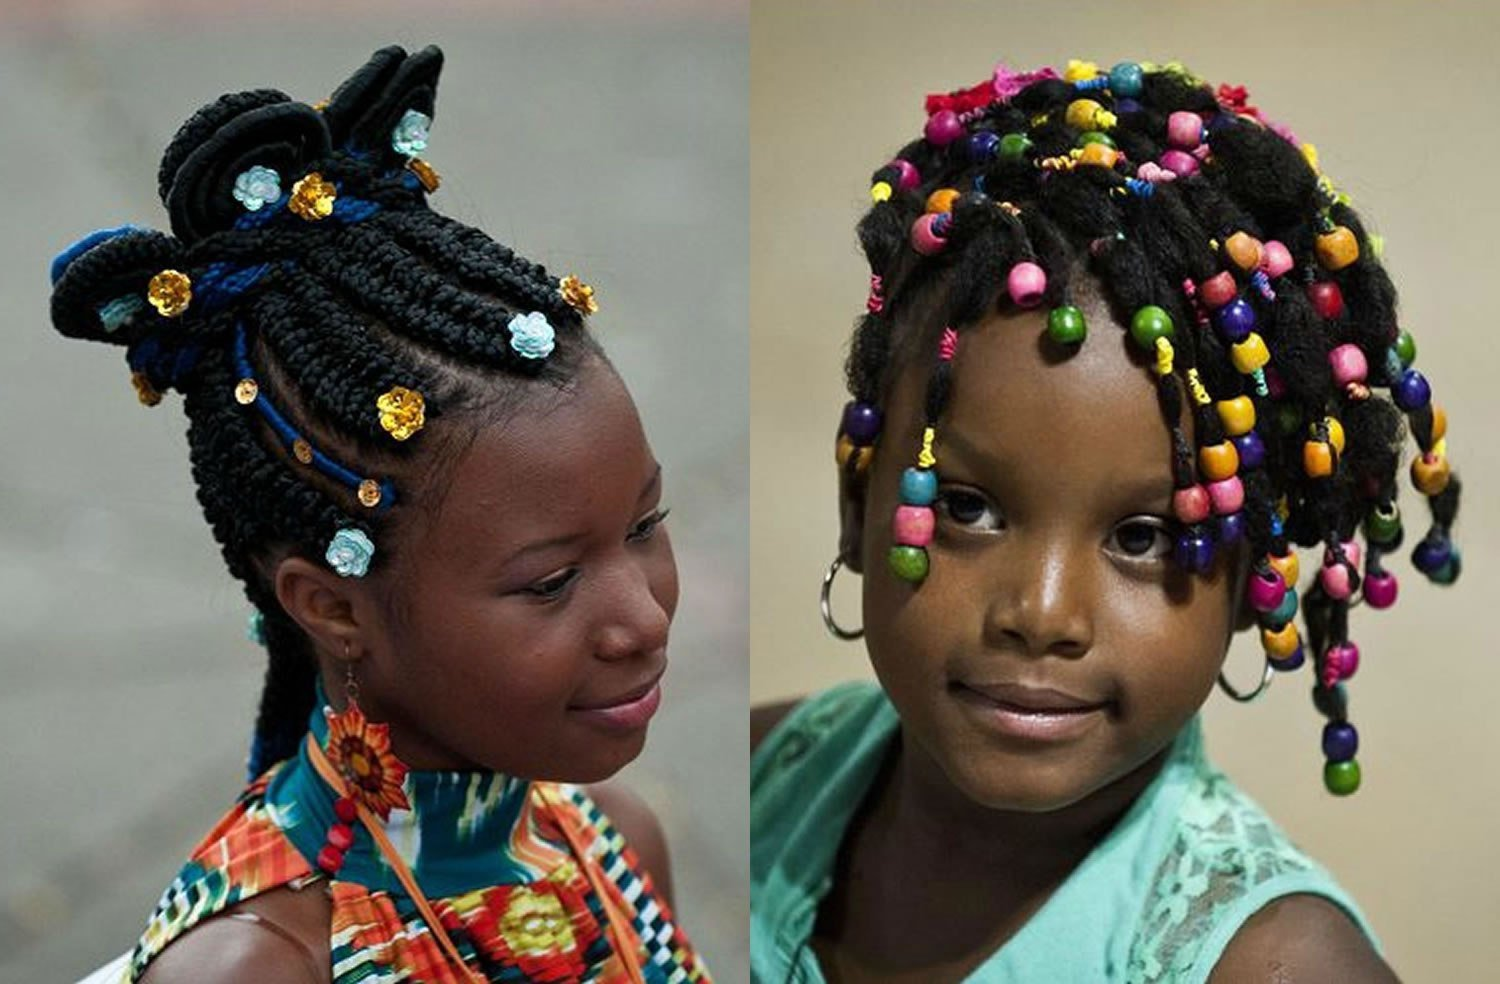 The Best Black Little Girl's Hairstyles For 2017 2018 71 Cool Pictures